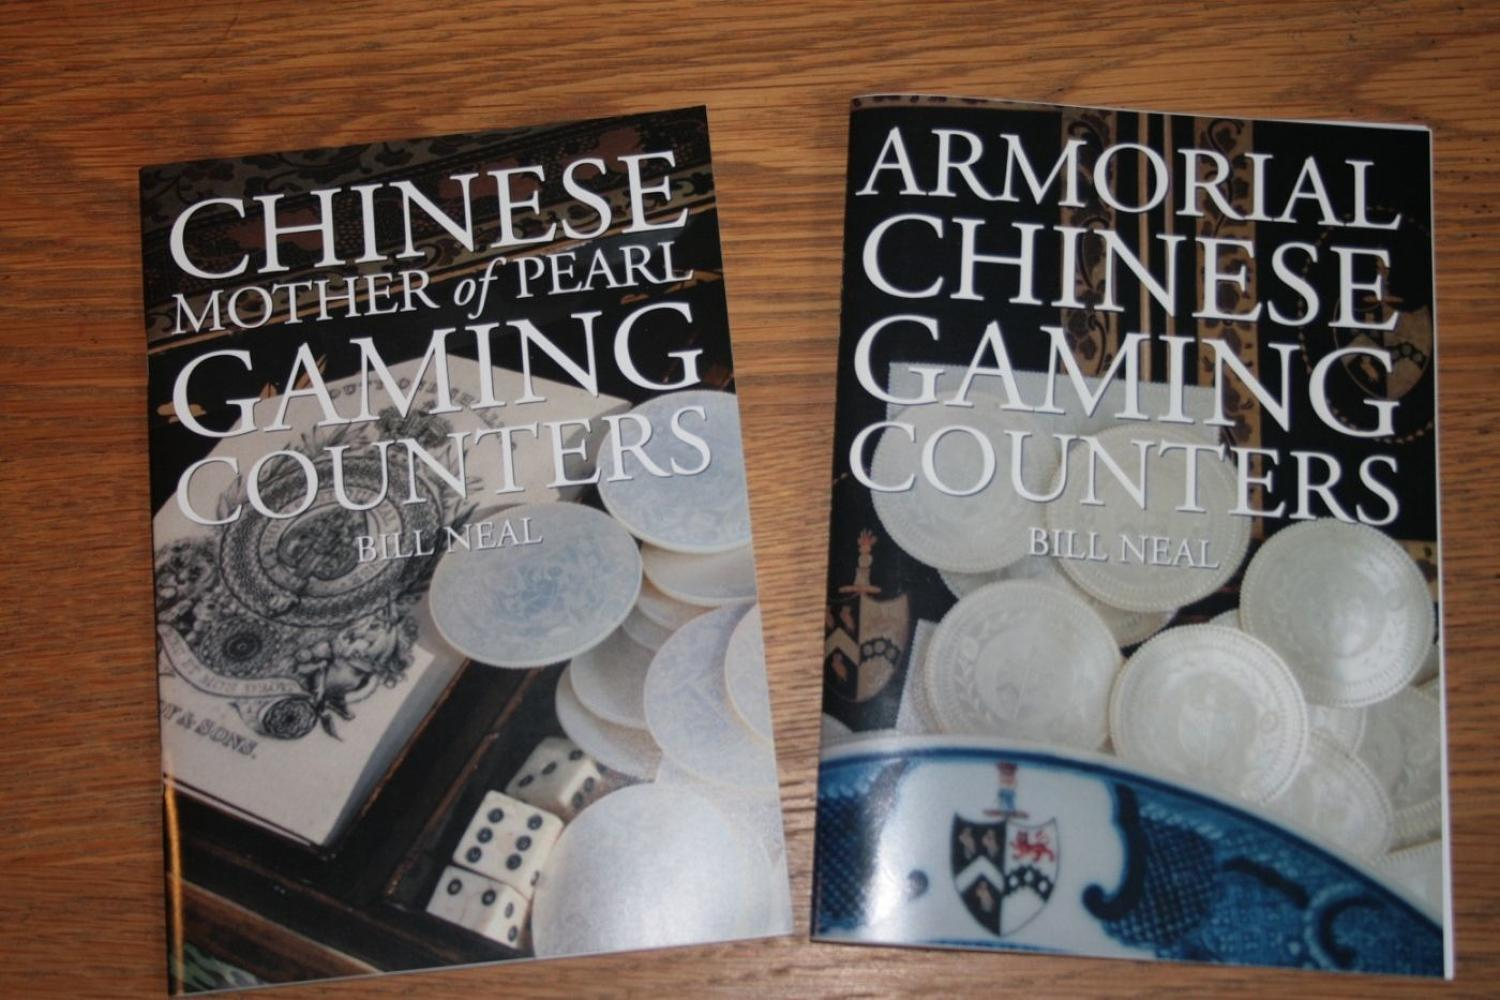 Booklets on gaming counters